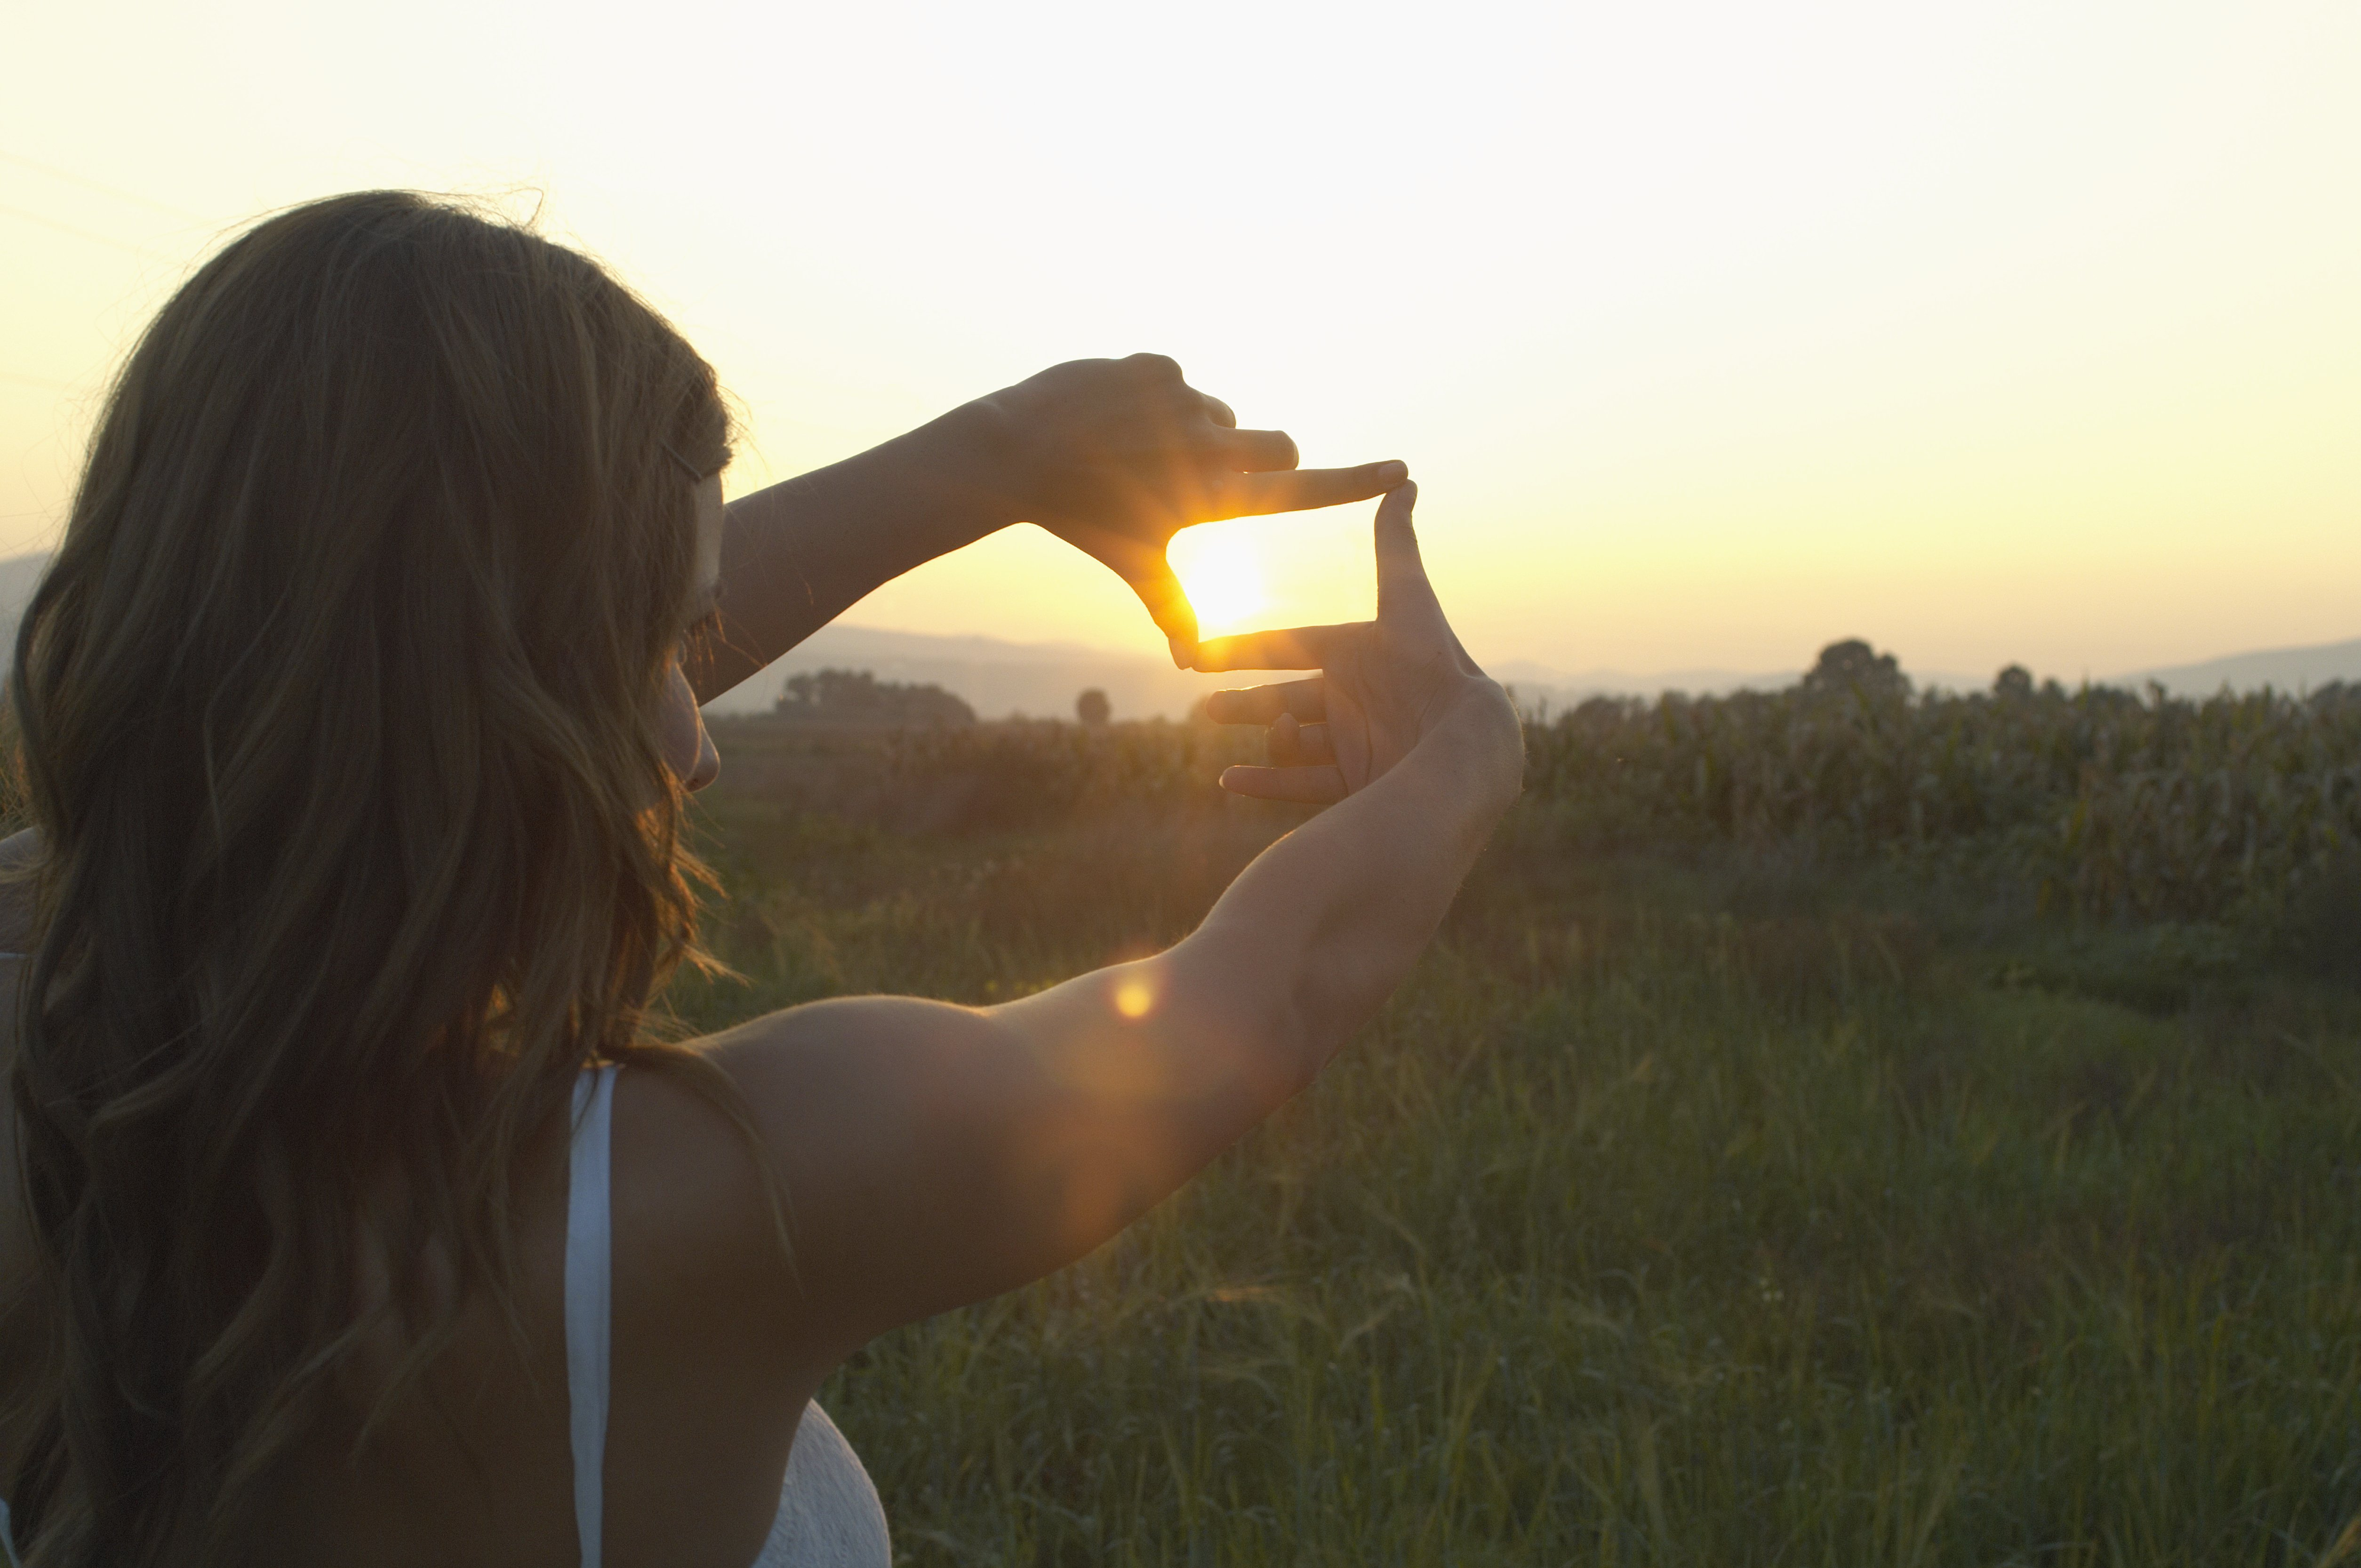 Teenage girl (16-18) outdoors, framing sun with fingers